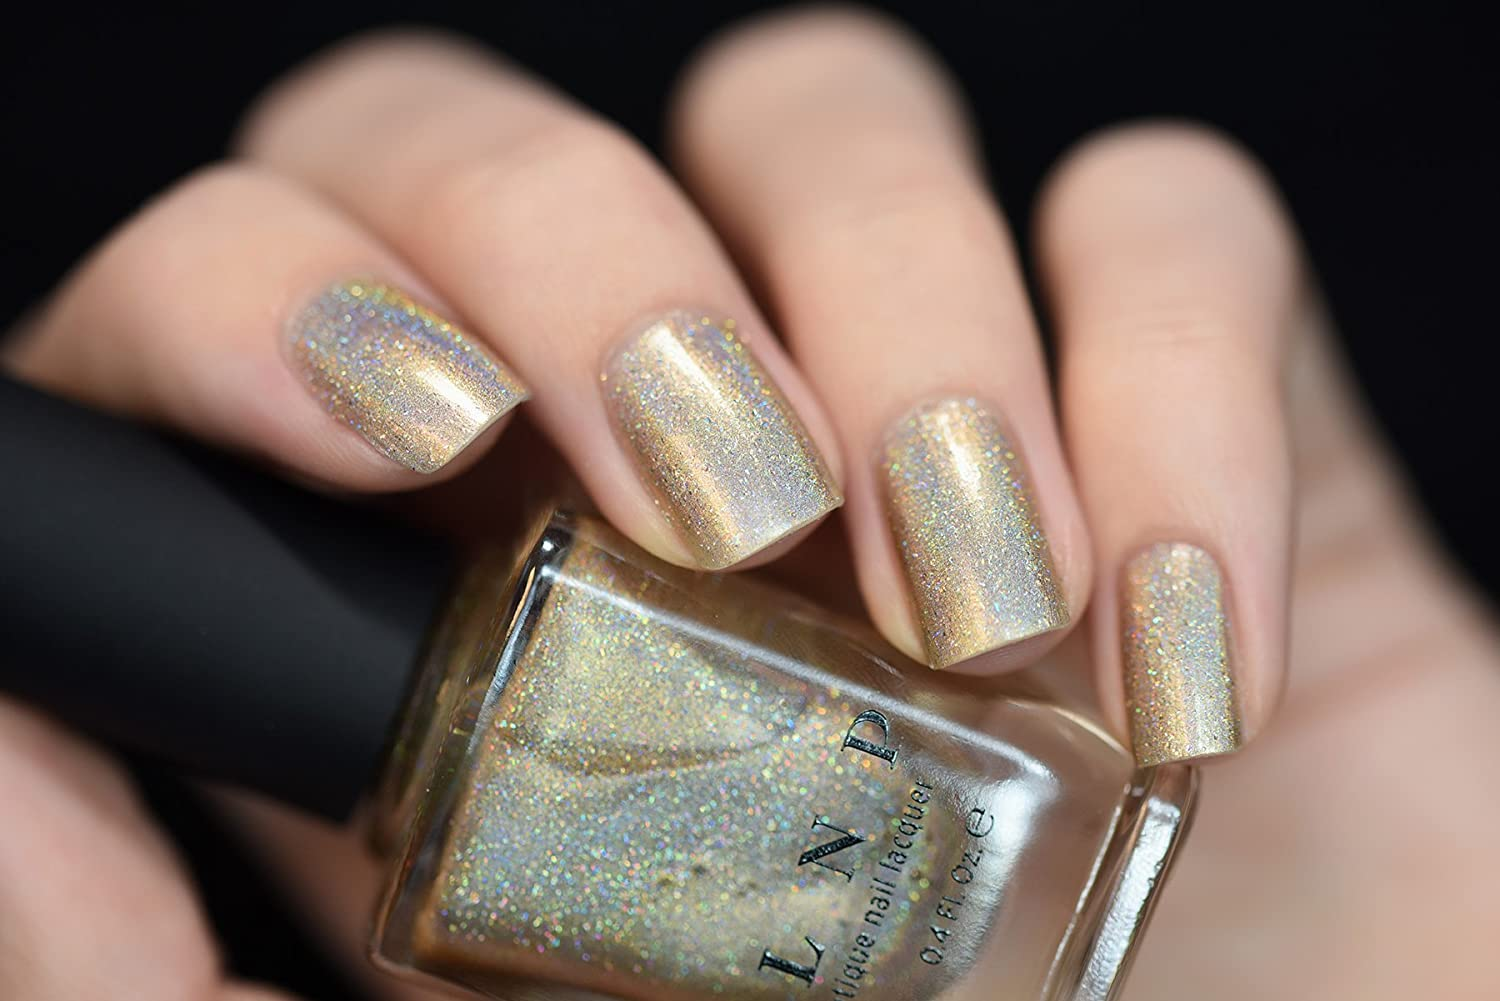 Amazon.com : ILNP I See You - Delicate Champagne Holographic Nail ...